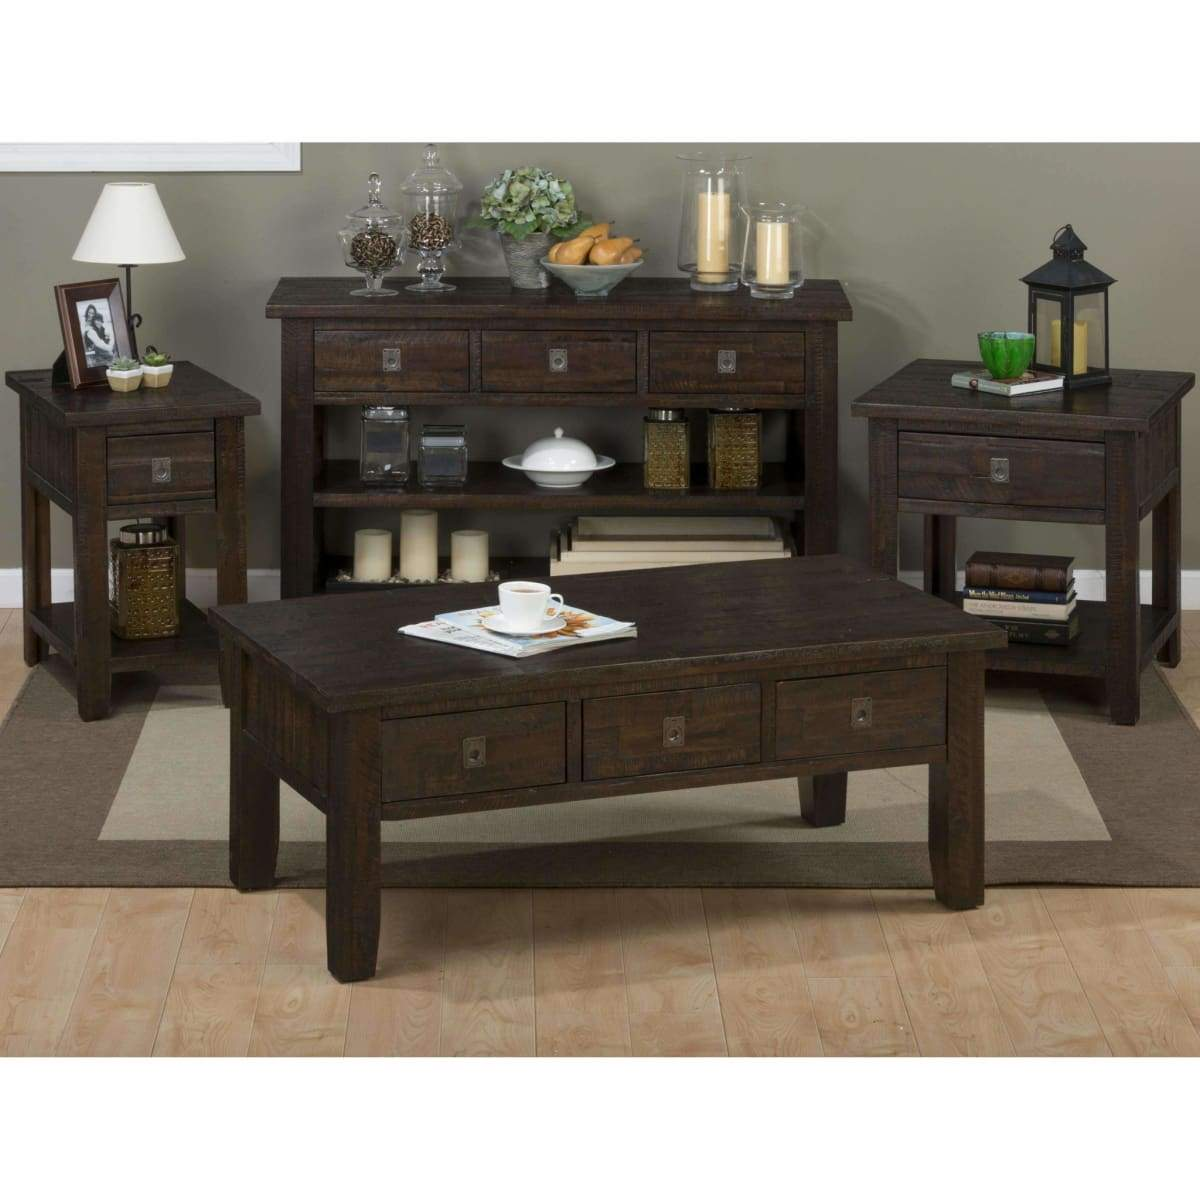 Kona Grove Cabinet Chairside Table - END TABLE/SIDE TABLE